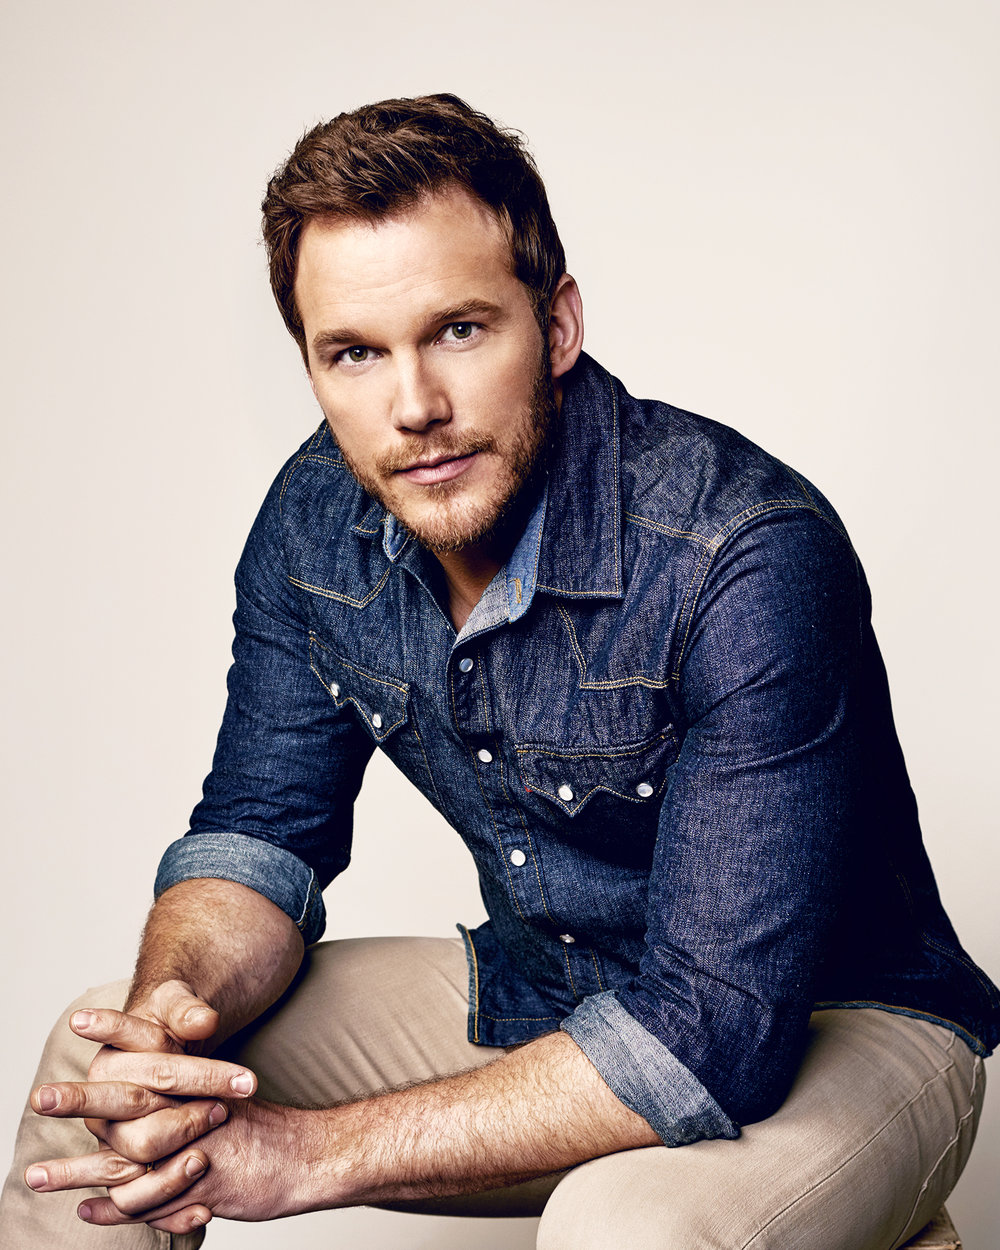 chris-pratt3.jpg